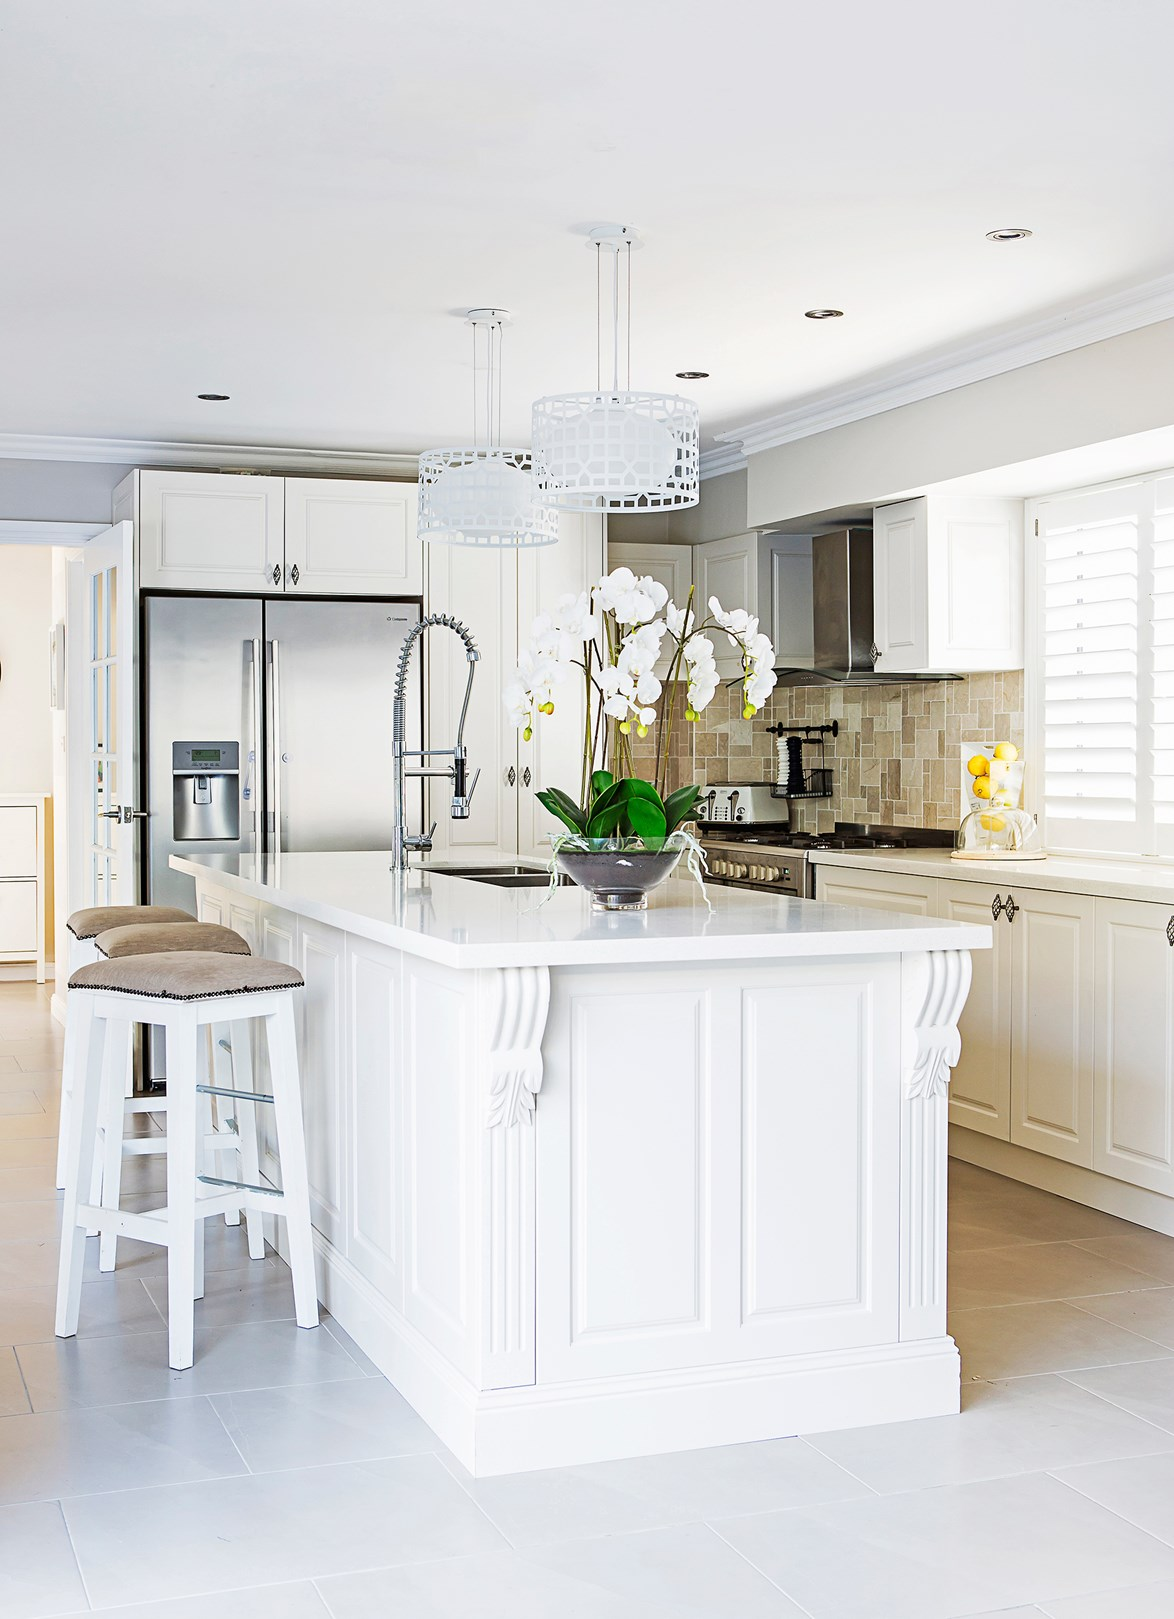 """Humble, but grand, is one way to summarise the French provincial look. This kitchen in a [stylishly renovated home](https://www.homestolove.com.au/cecilia-and-adrians-stylish-renovation-on-a-budget-2072 